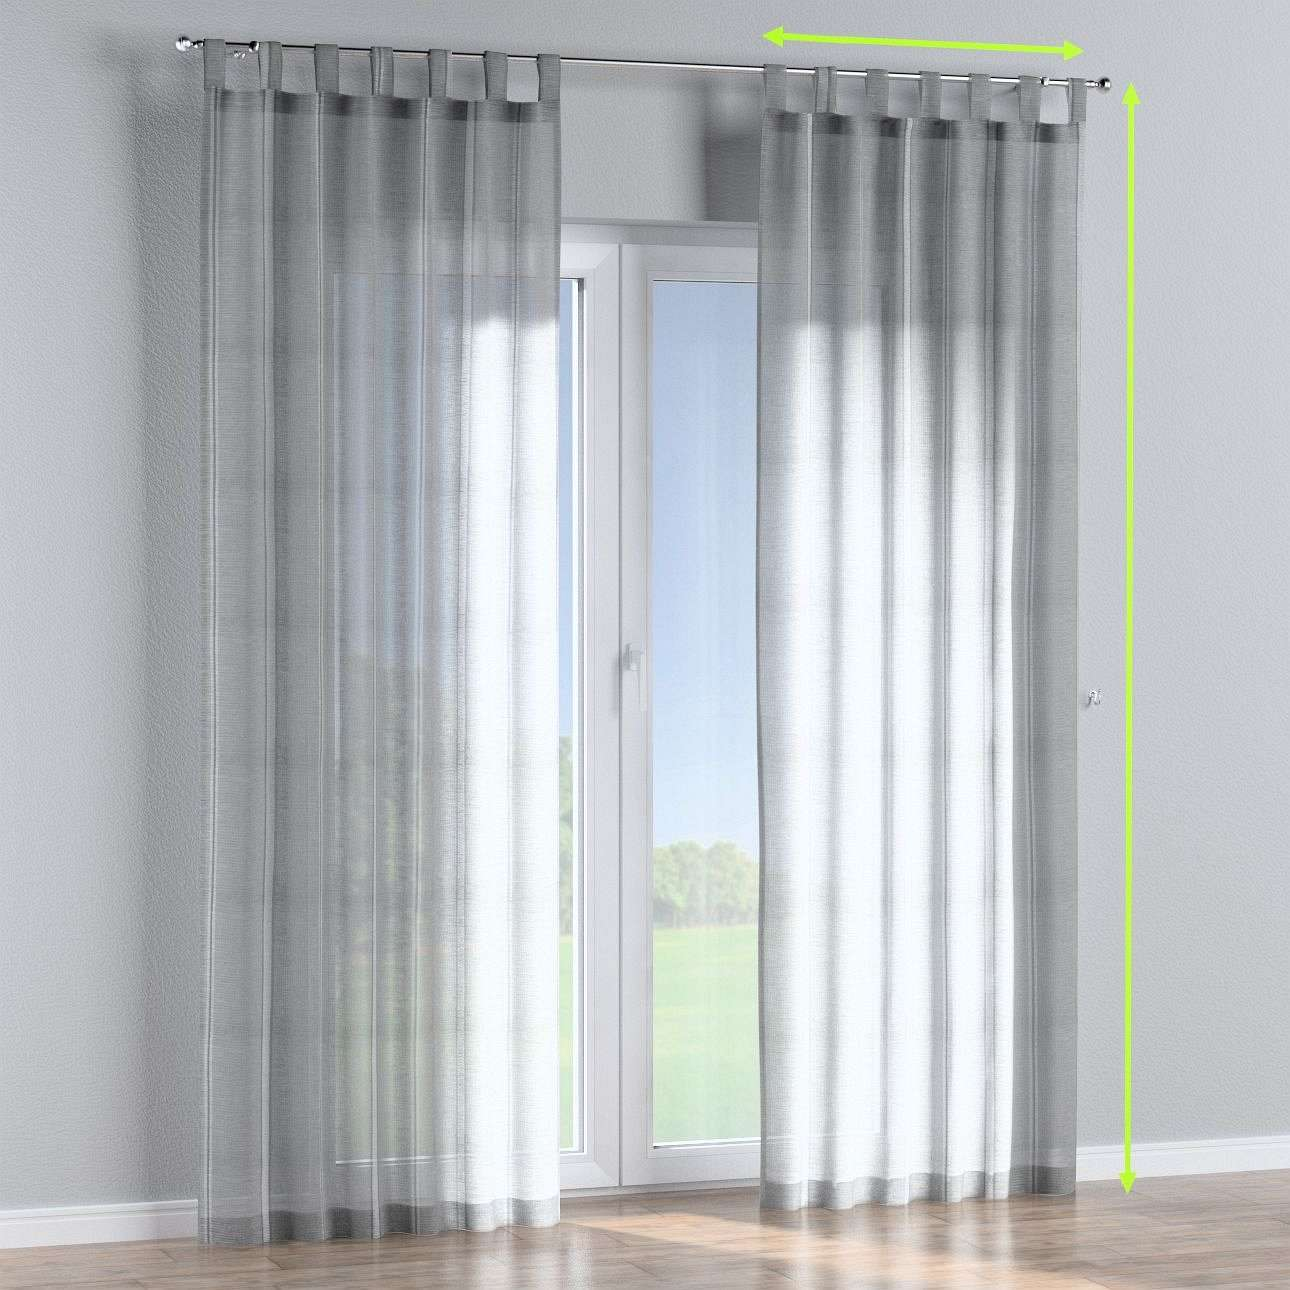 Tab top curtains in collection Romantica, fabric: 141-31